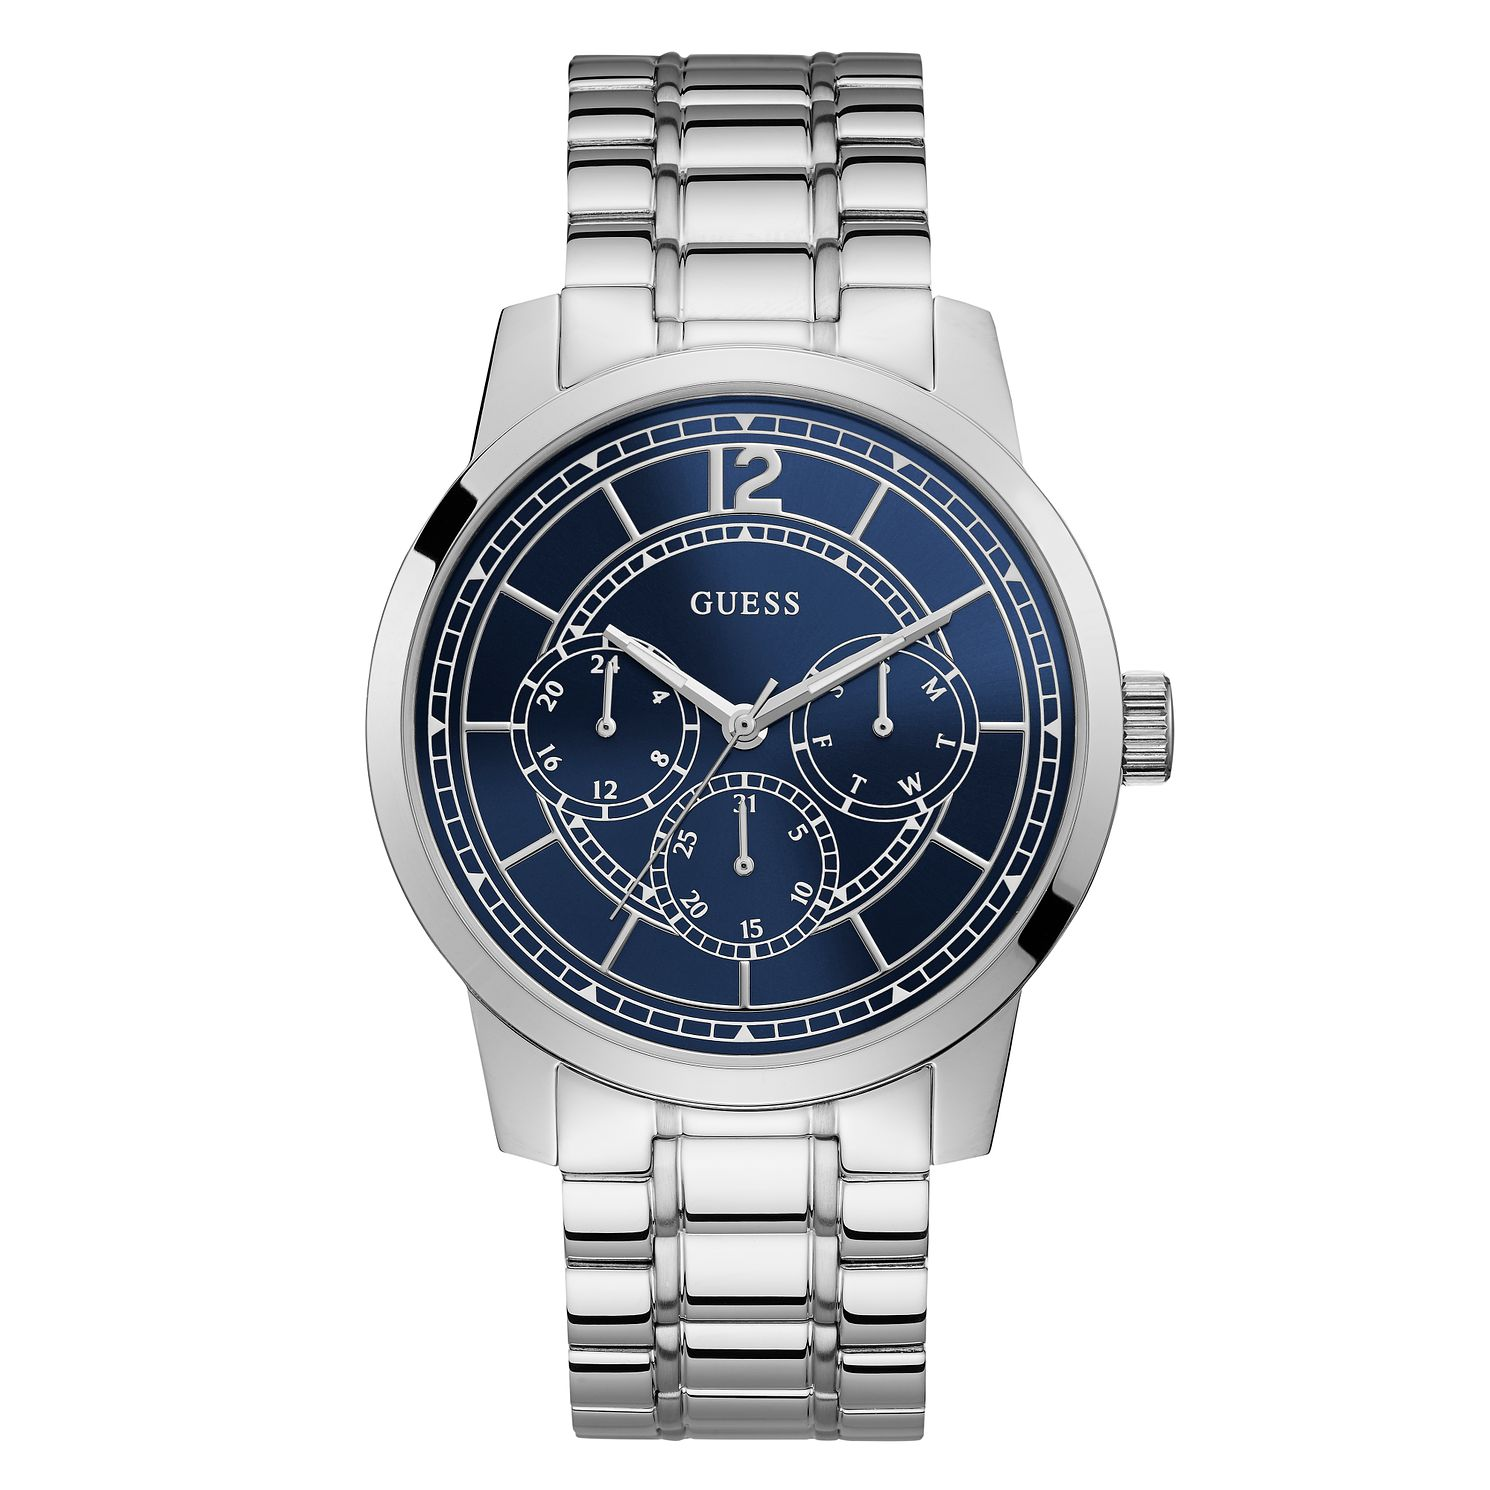 Guess Men's Blue Dial Stainless Steel Bracelet Watch - Product number 4094646